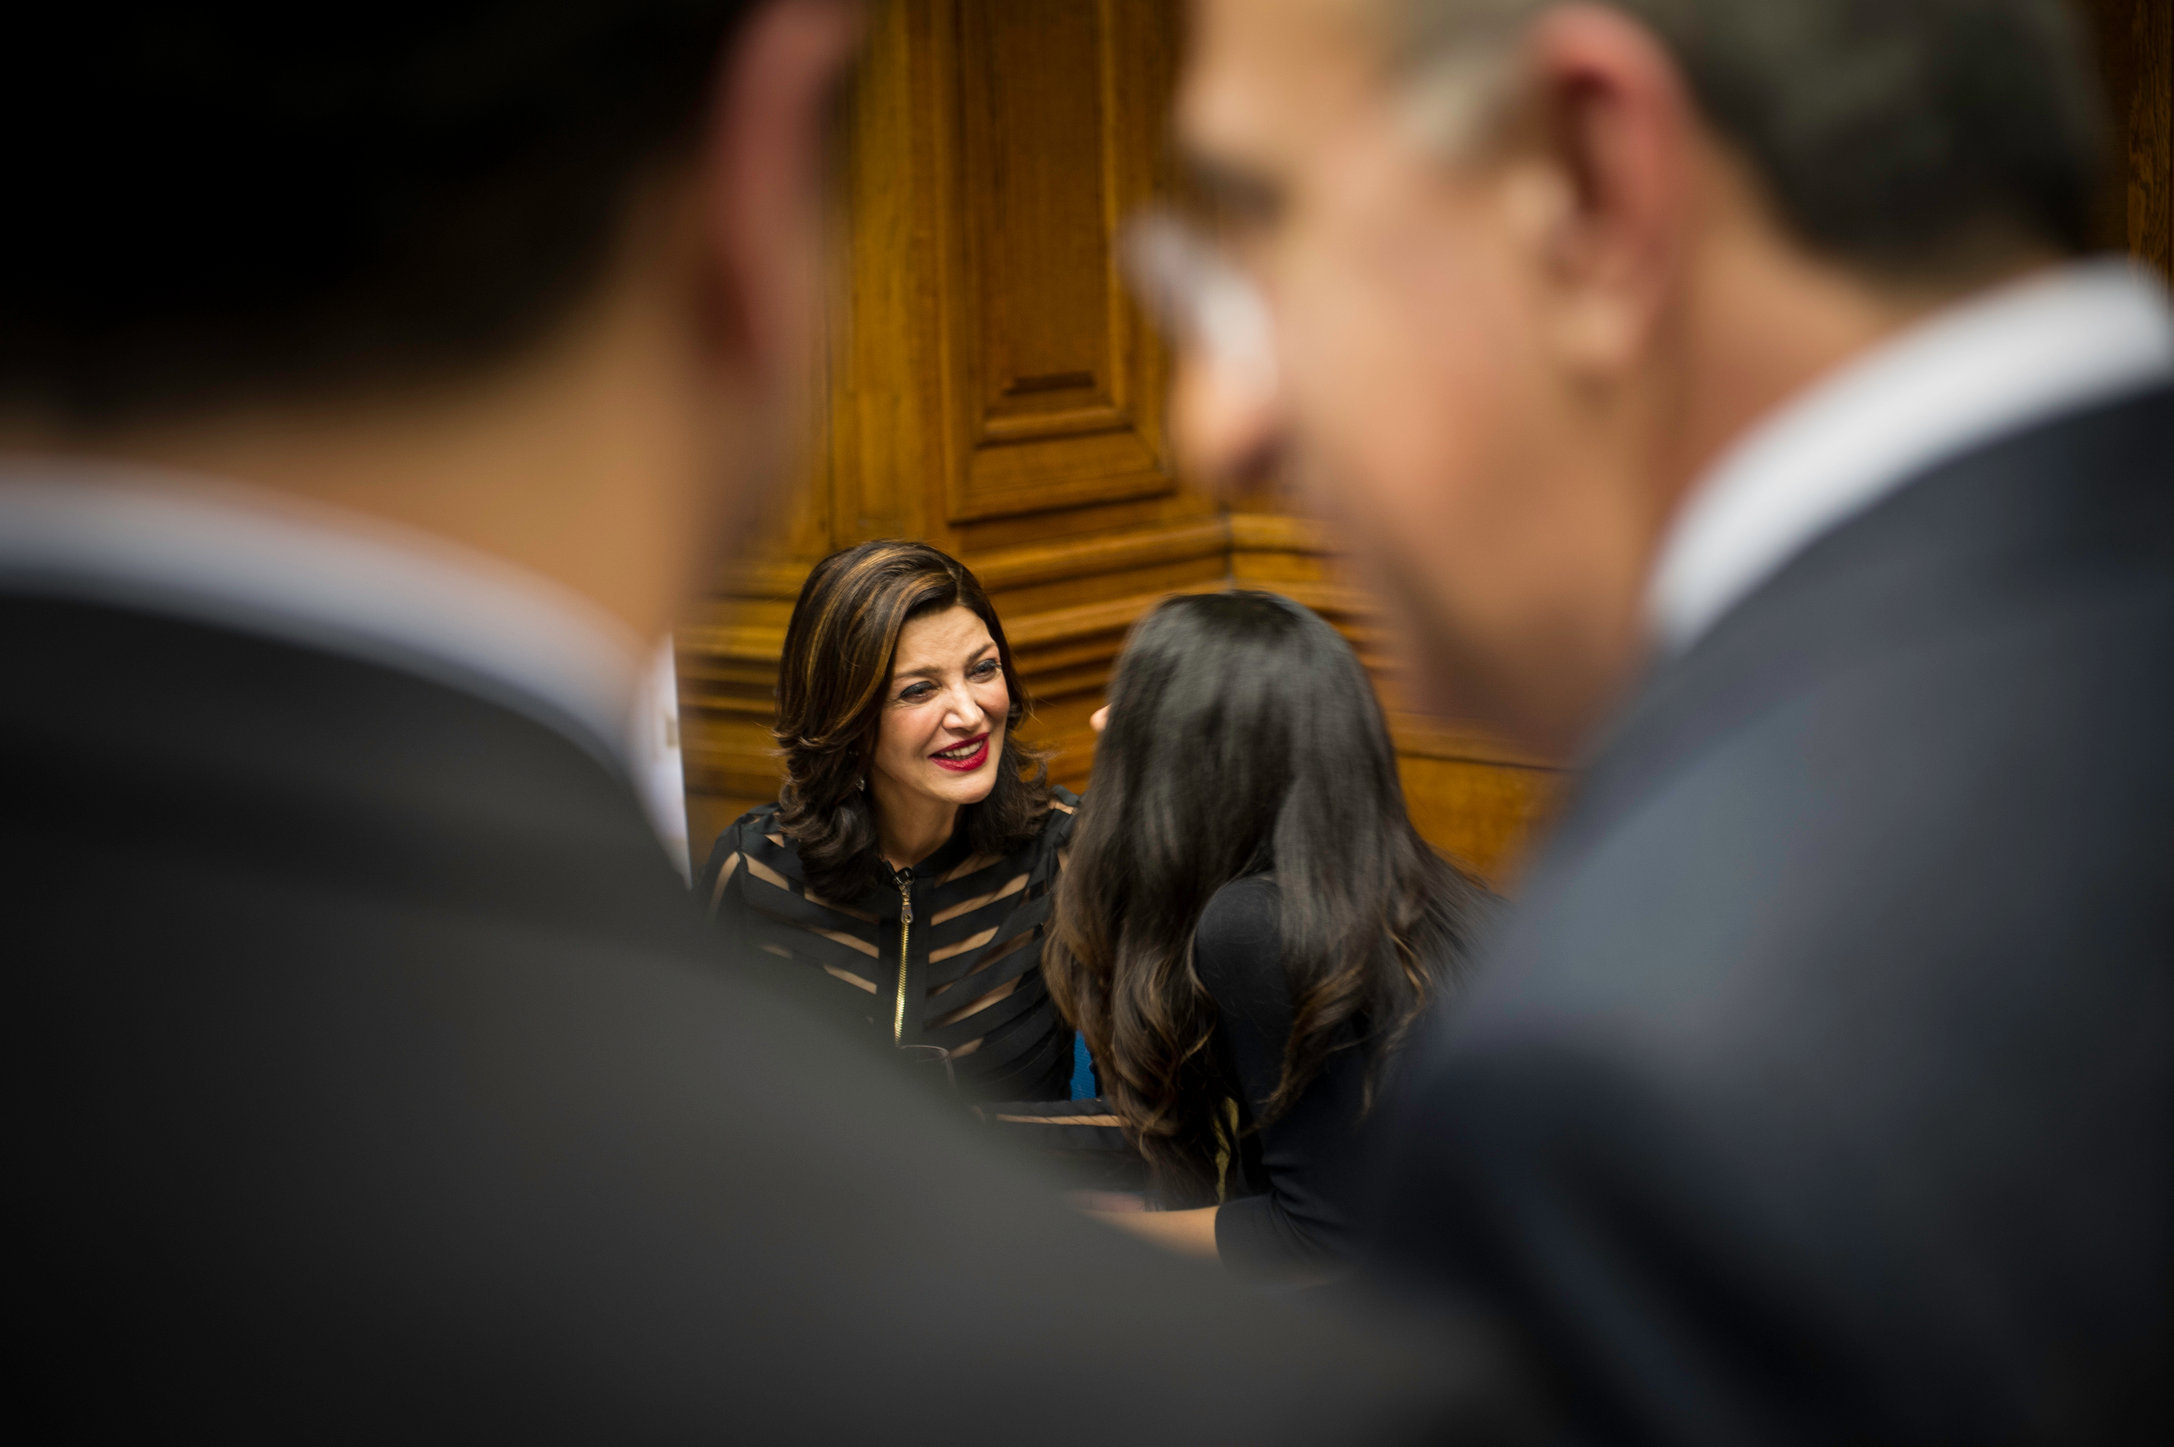 Ludovic_Robert_Photographer_Aneveningwith_Shohreh_Aghdashloo_November_2013-20131129-0437.jpg